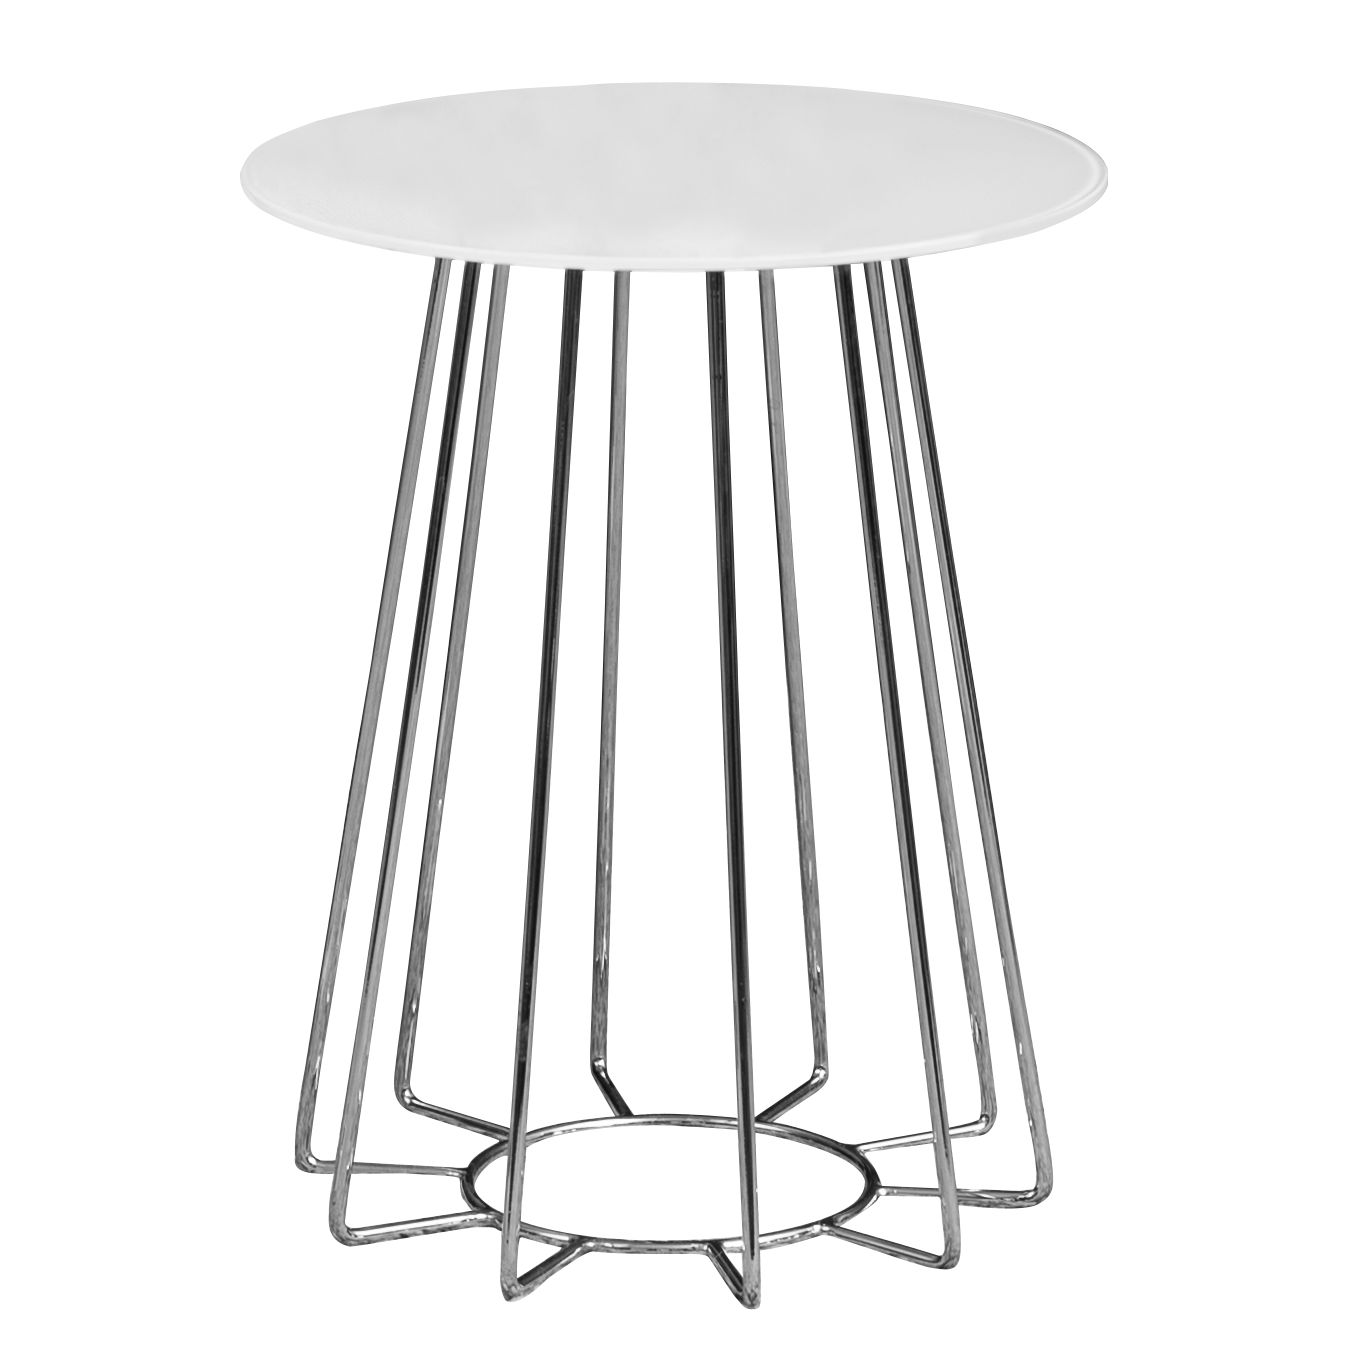 Table d'appoint Motegi - Blanc / Chrome, Jack and Alice